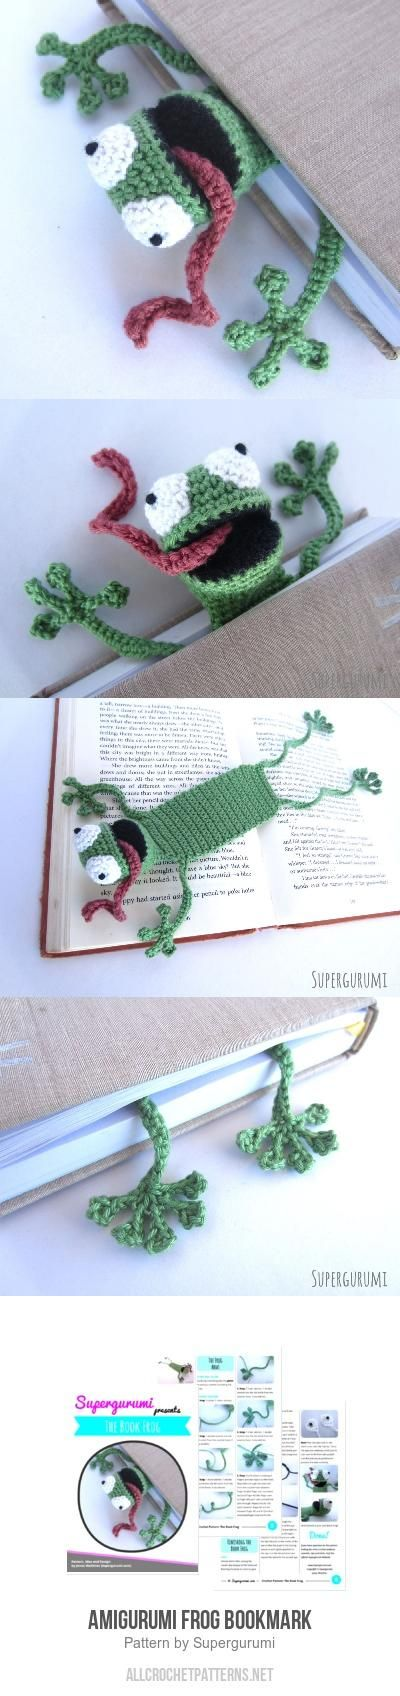 Amigurumi Frog Bookmark Crochet Pattern | costura | Pinterest ...